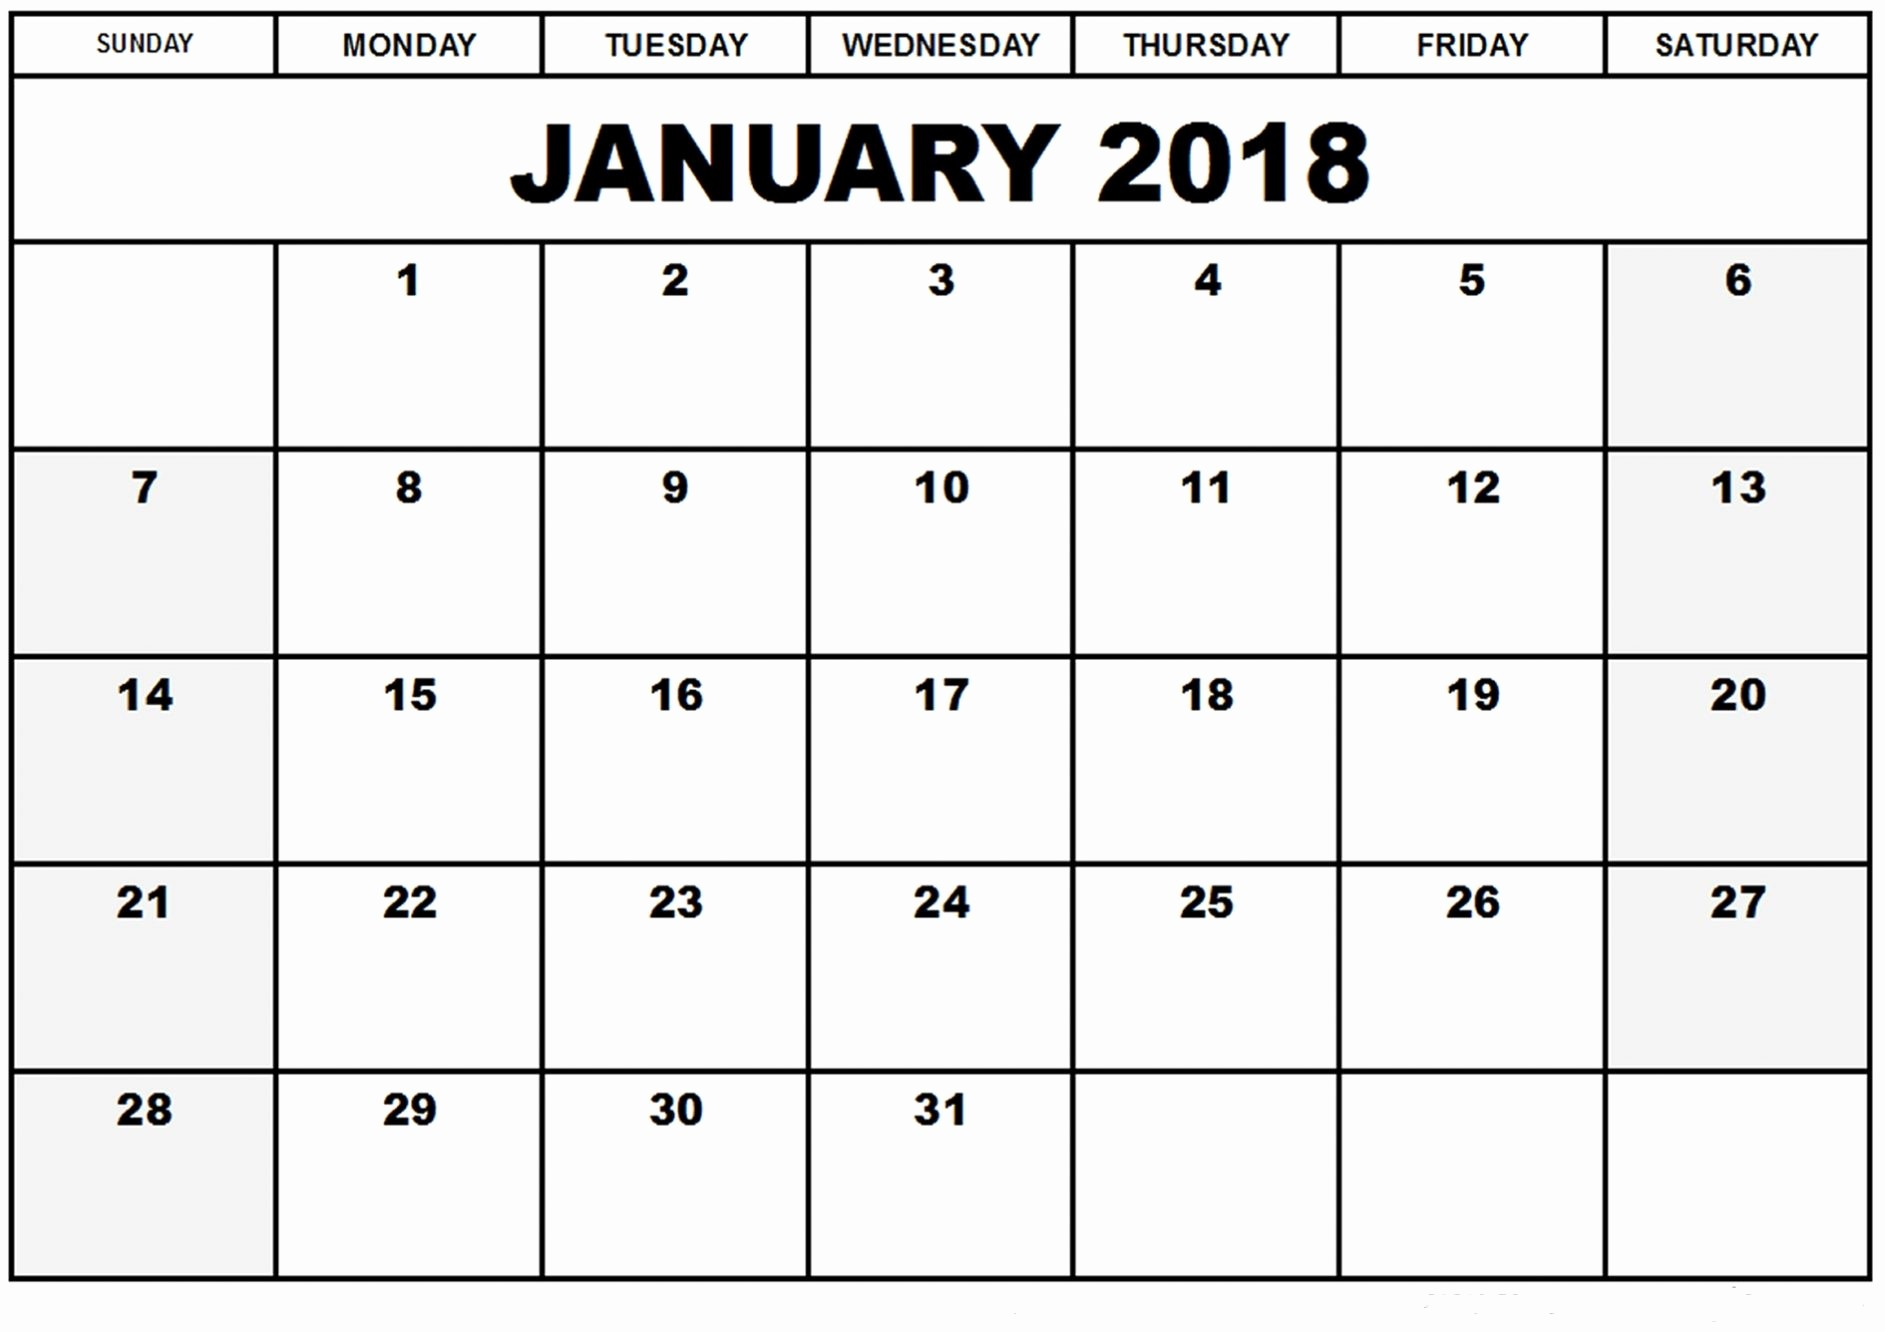 2018 Month by Month Calendar Unique January 2018 Monthly Calendar Printable